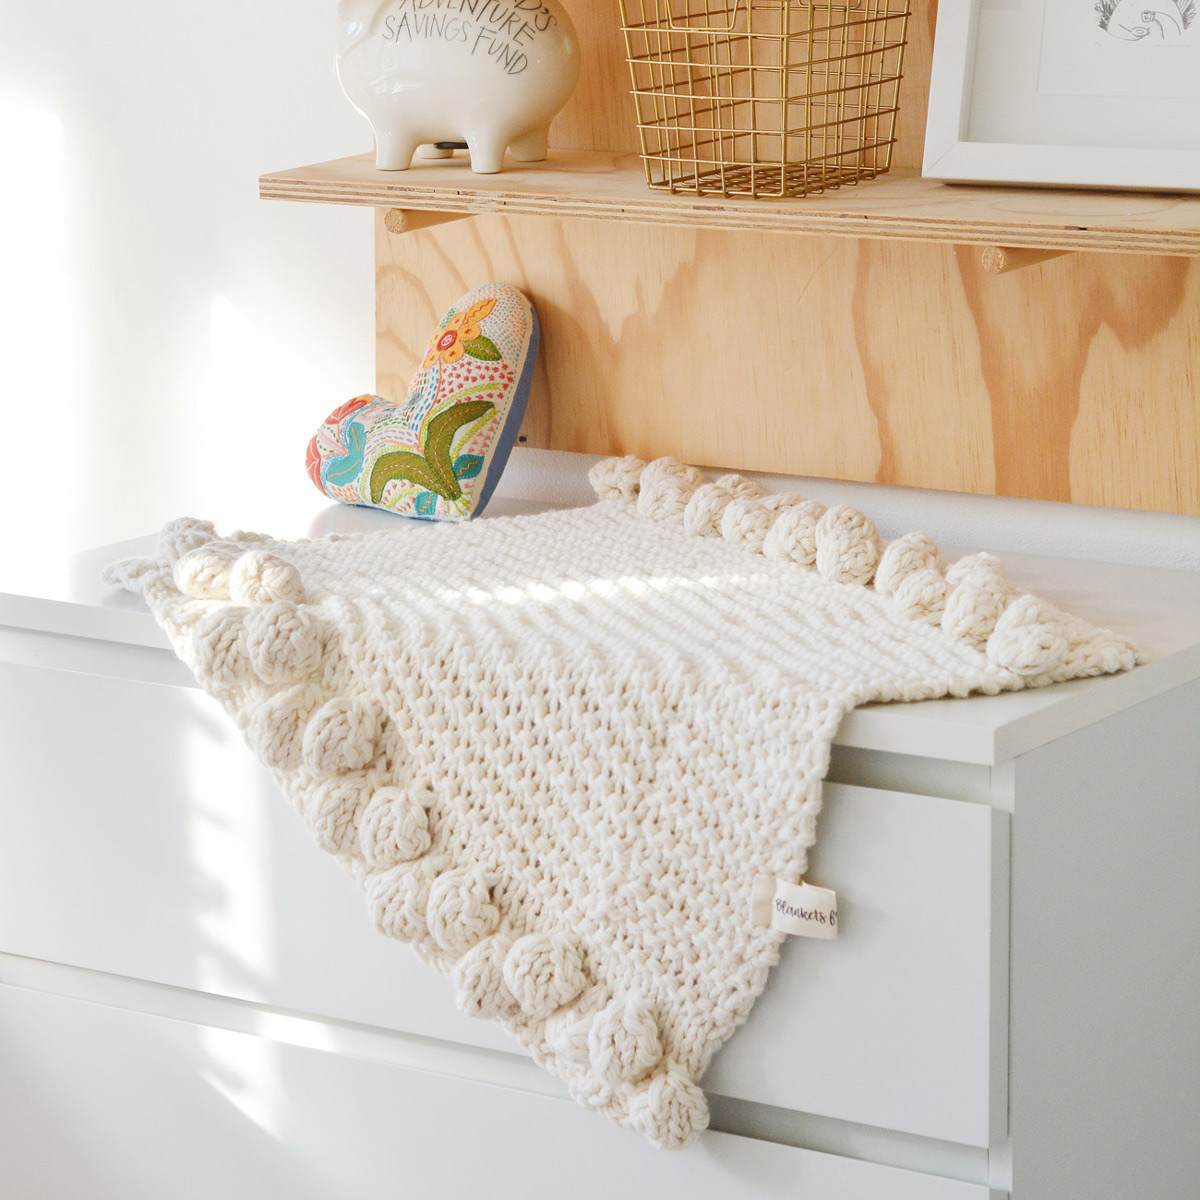 Handmade with 100% pure Merino Wool from the heart of the Karoo.  Dimensions: Pram & Car seat size 71 x 63 cm Cot size 87 x 81 cm